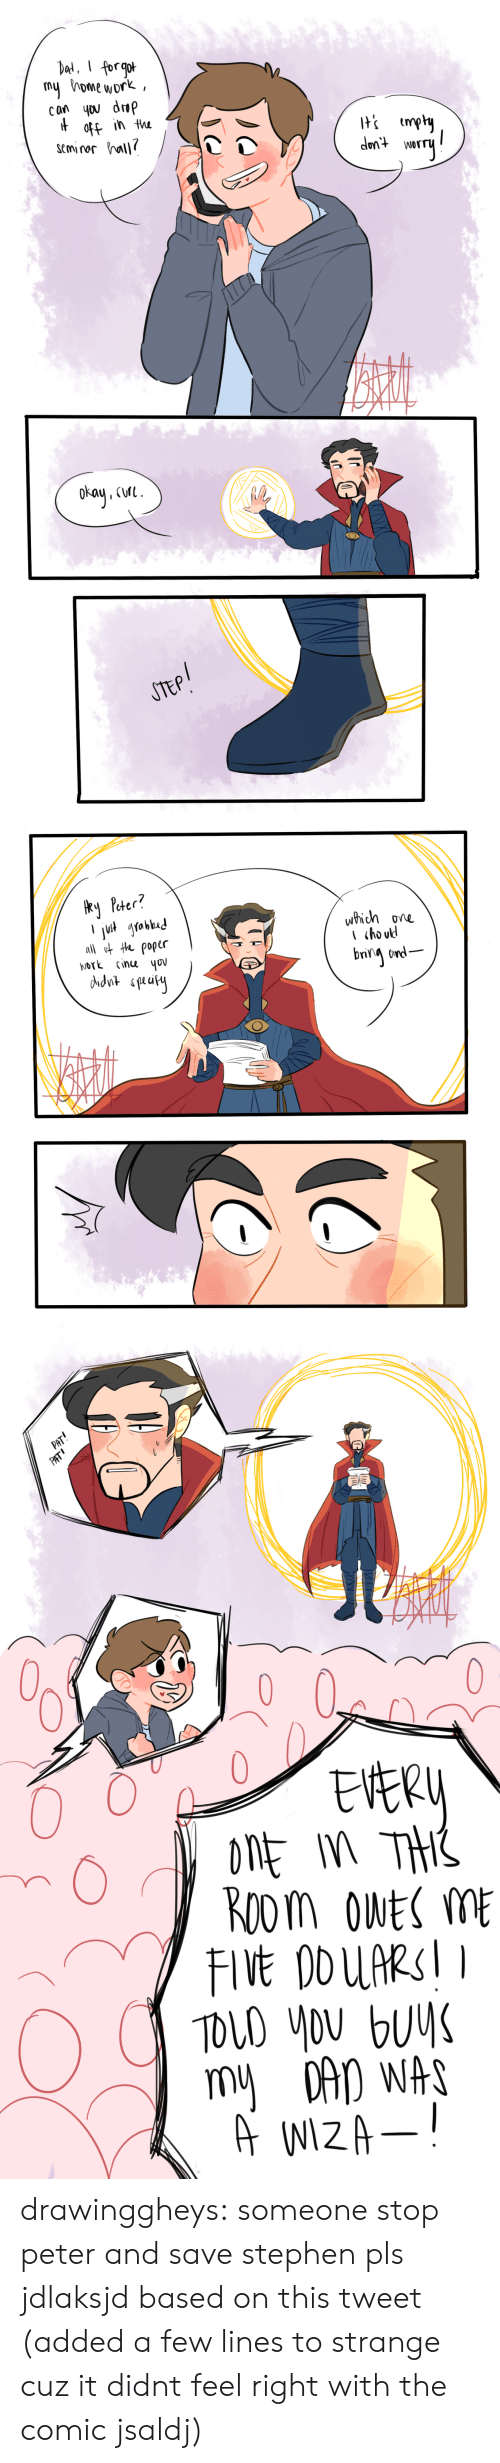 Stephen, Target, and Tumblr: my home work  off in the  scmiror hall   Peter?  which one  work inuo  bnin d-   EER  TOLD you buy  nm drawinggheys:  someone stop peter and save stephen pls jdlaksjd based on this tweet  (added a few lines to strange cuz it didnt feel right with the comic jsaldj)